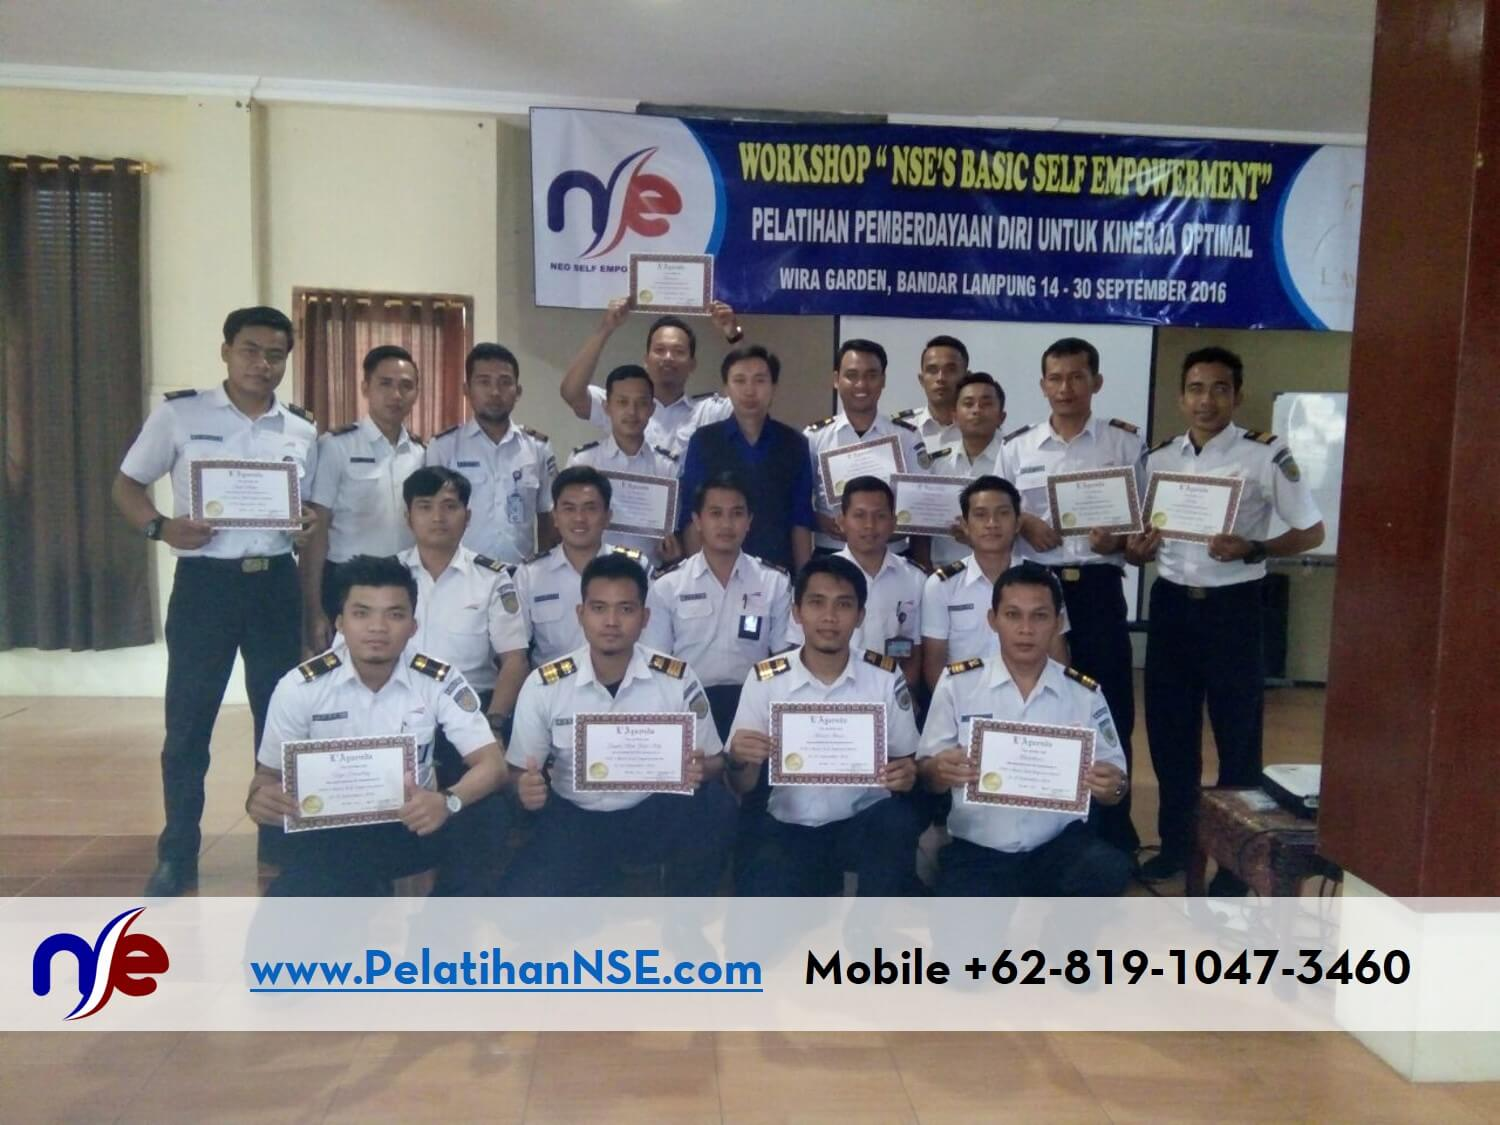 Basic Self Empowerment PT. KAI (Persero) 21-22 September 2016 - Foto Bersama